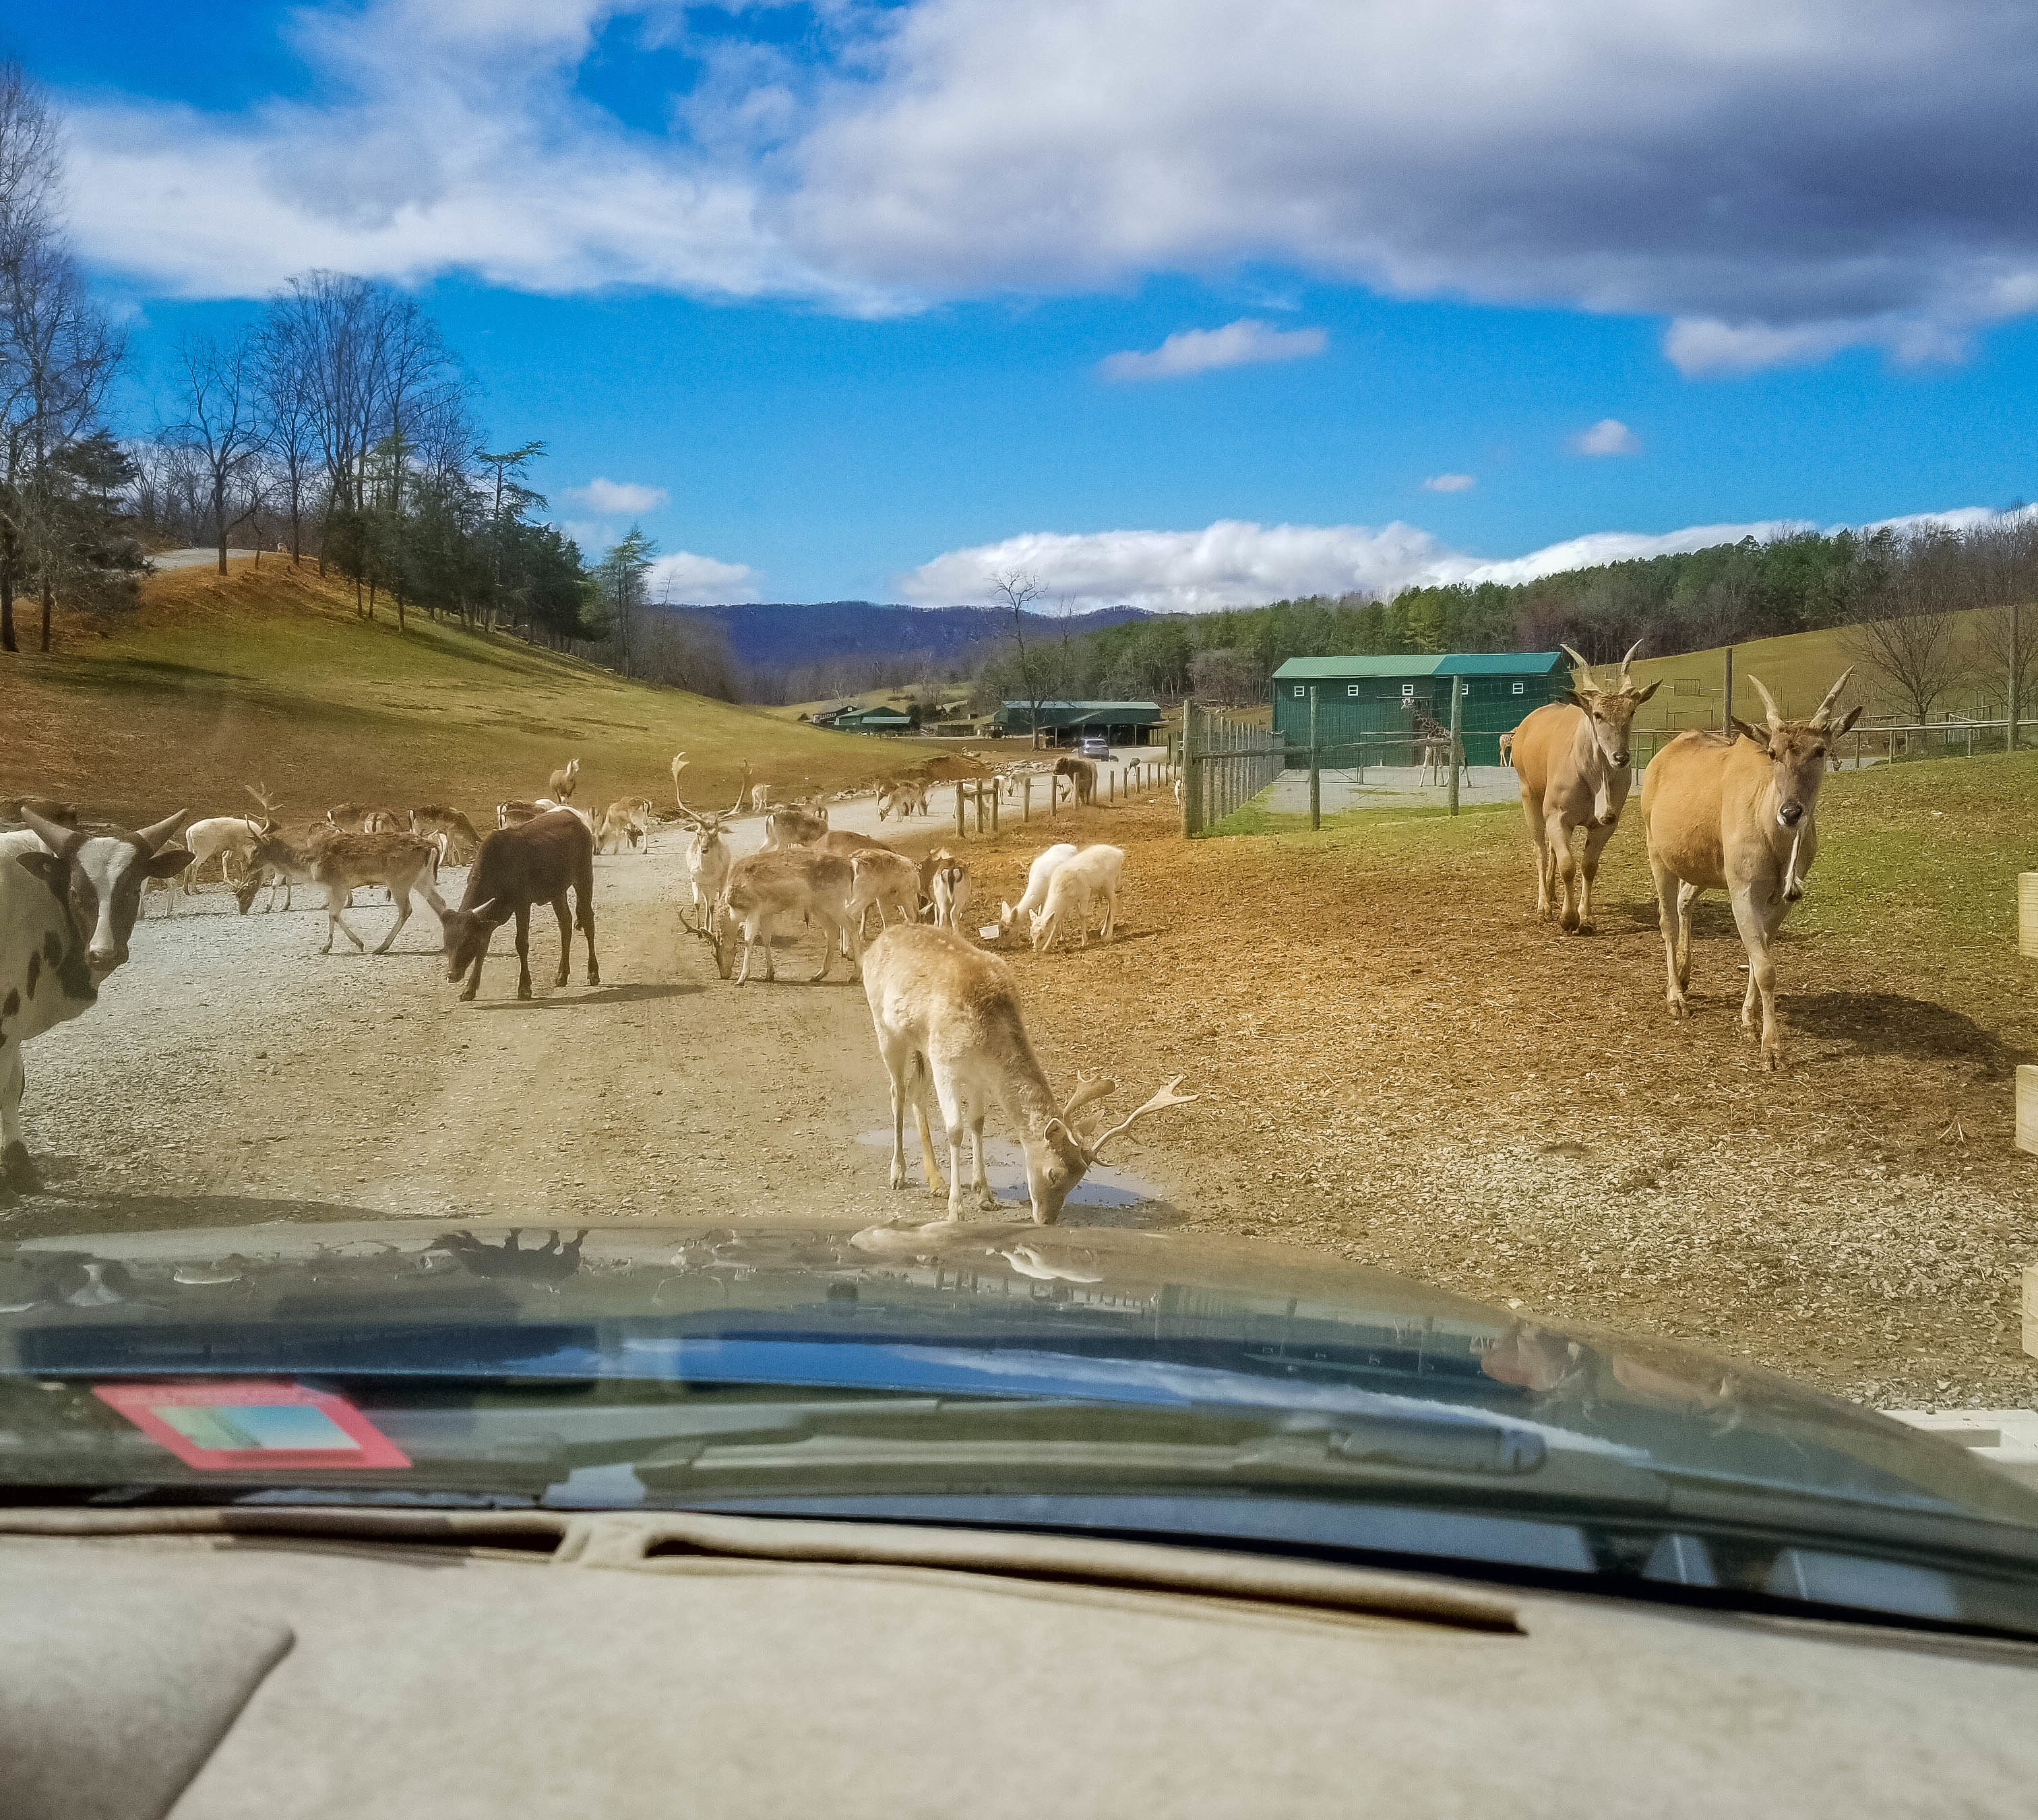 Virginia Safari Park: A Wild Adventure in the Heart of Virginia